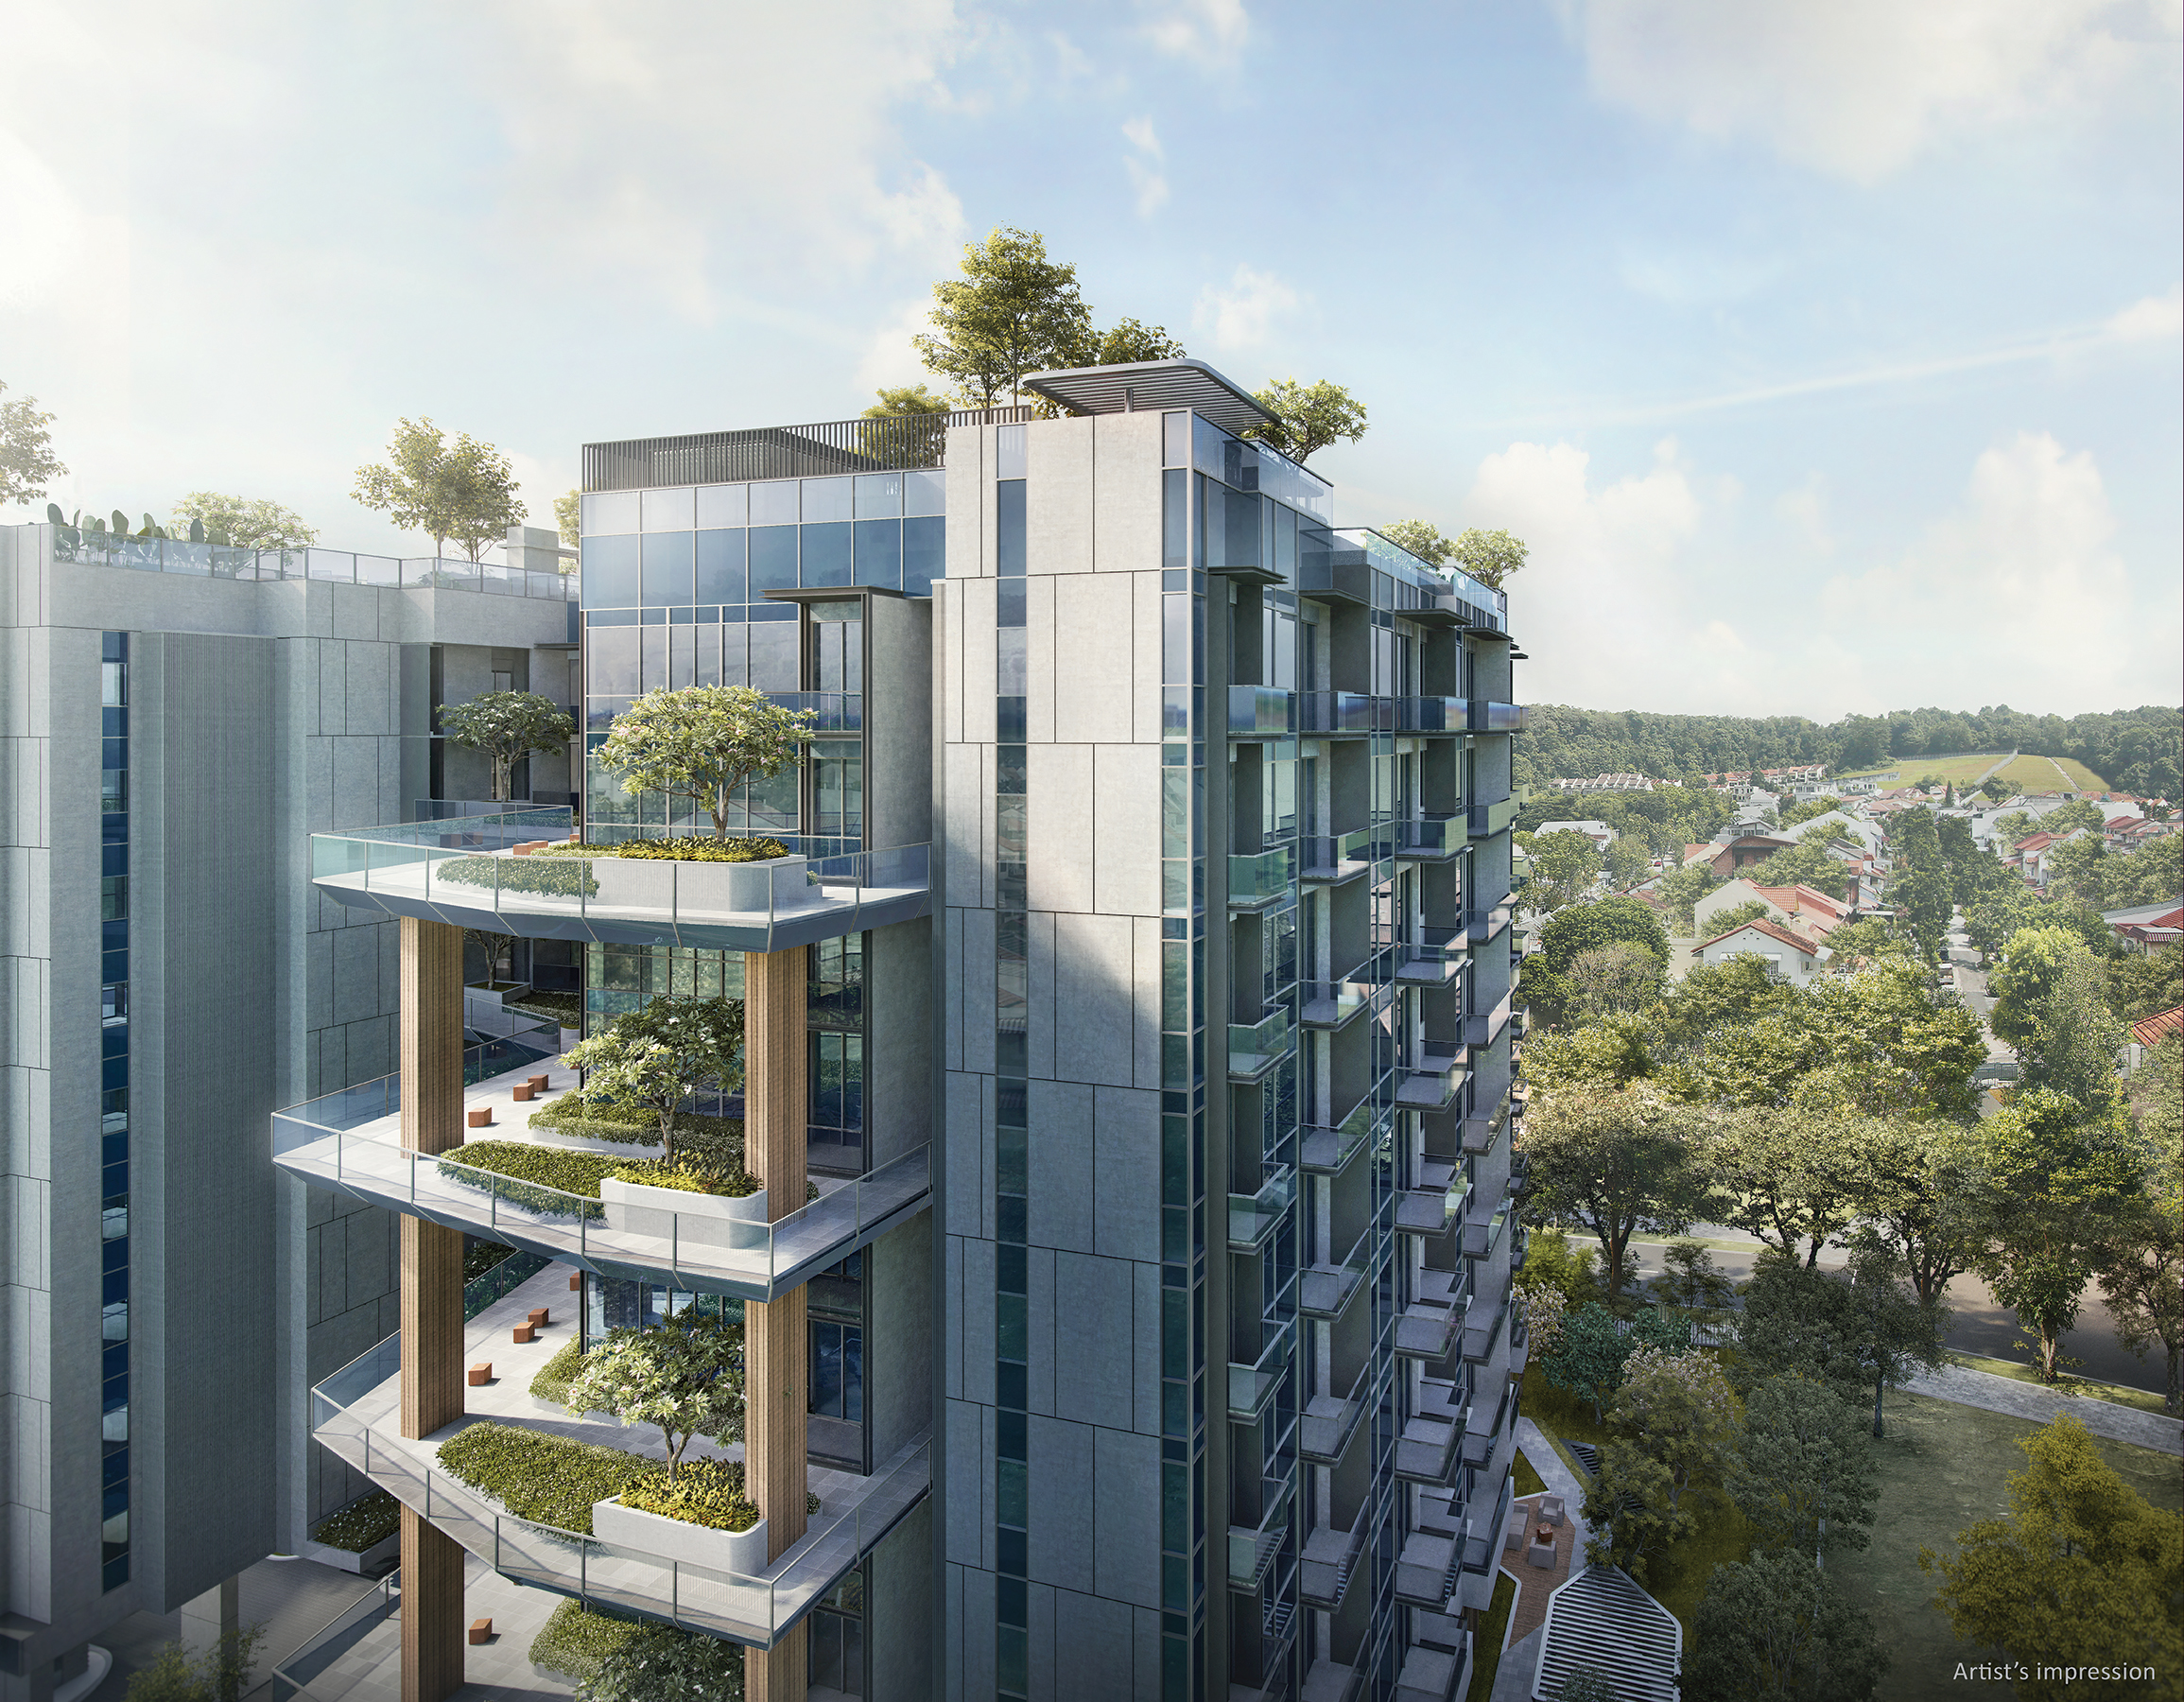 Tuan Sing's freehold Mont Botanik Residence places great emphasis on communal living in the sky, with sky gardens at one's doorsteps (Credit: Tuan Sing Holdings)